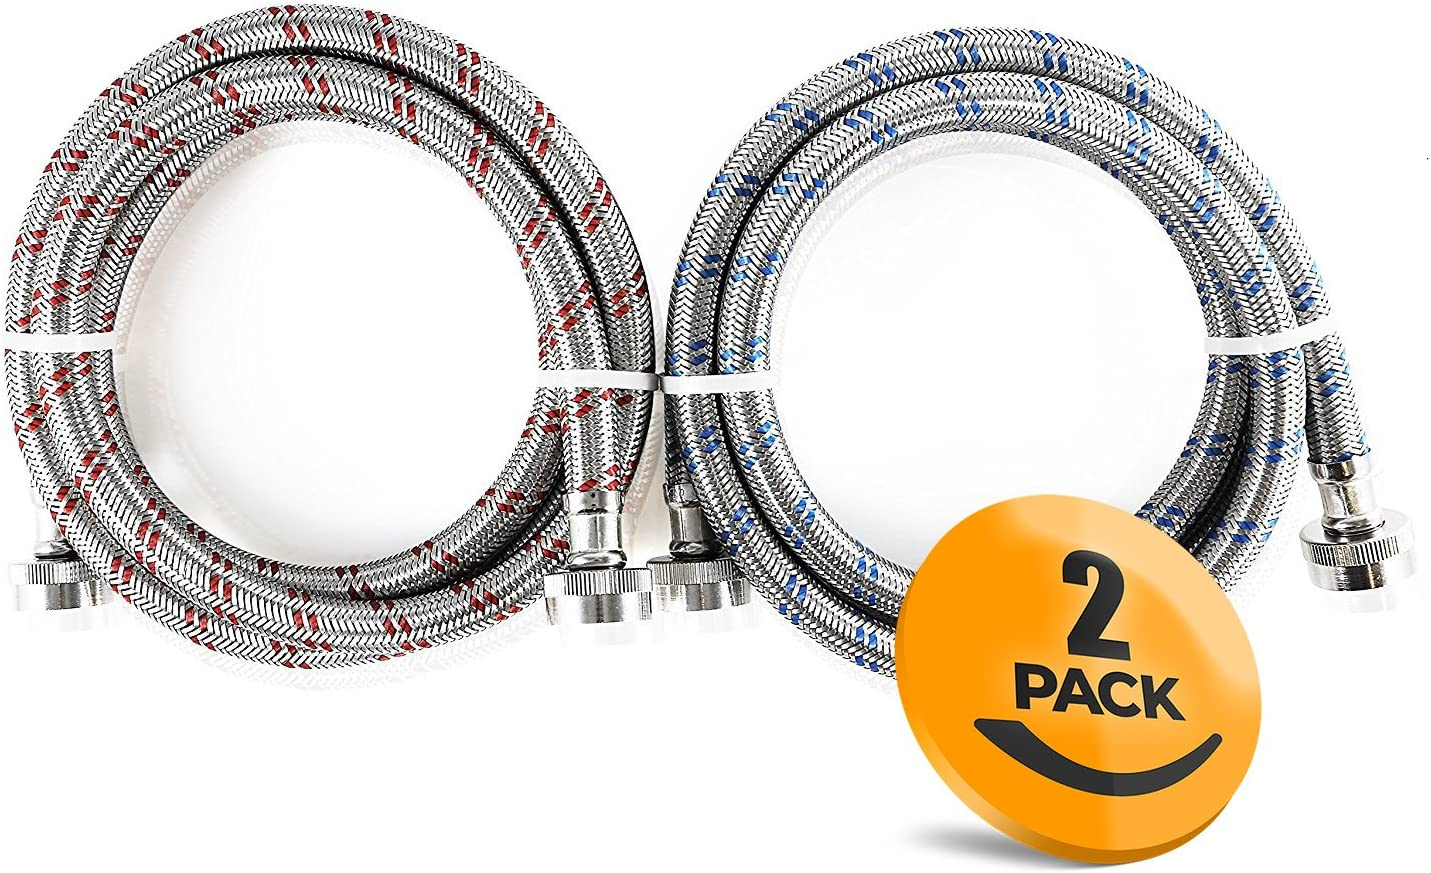 2-Pack Stainless Steel Washing Machine Hoses Burst Proof